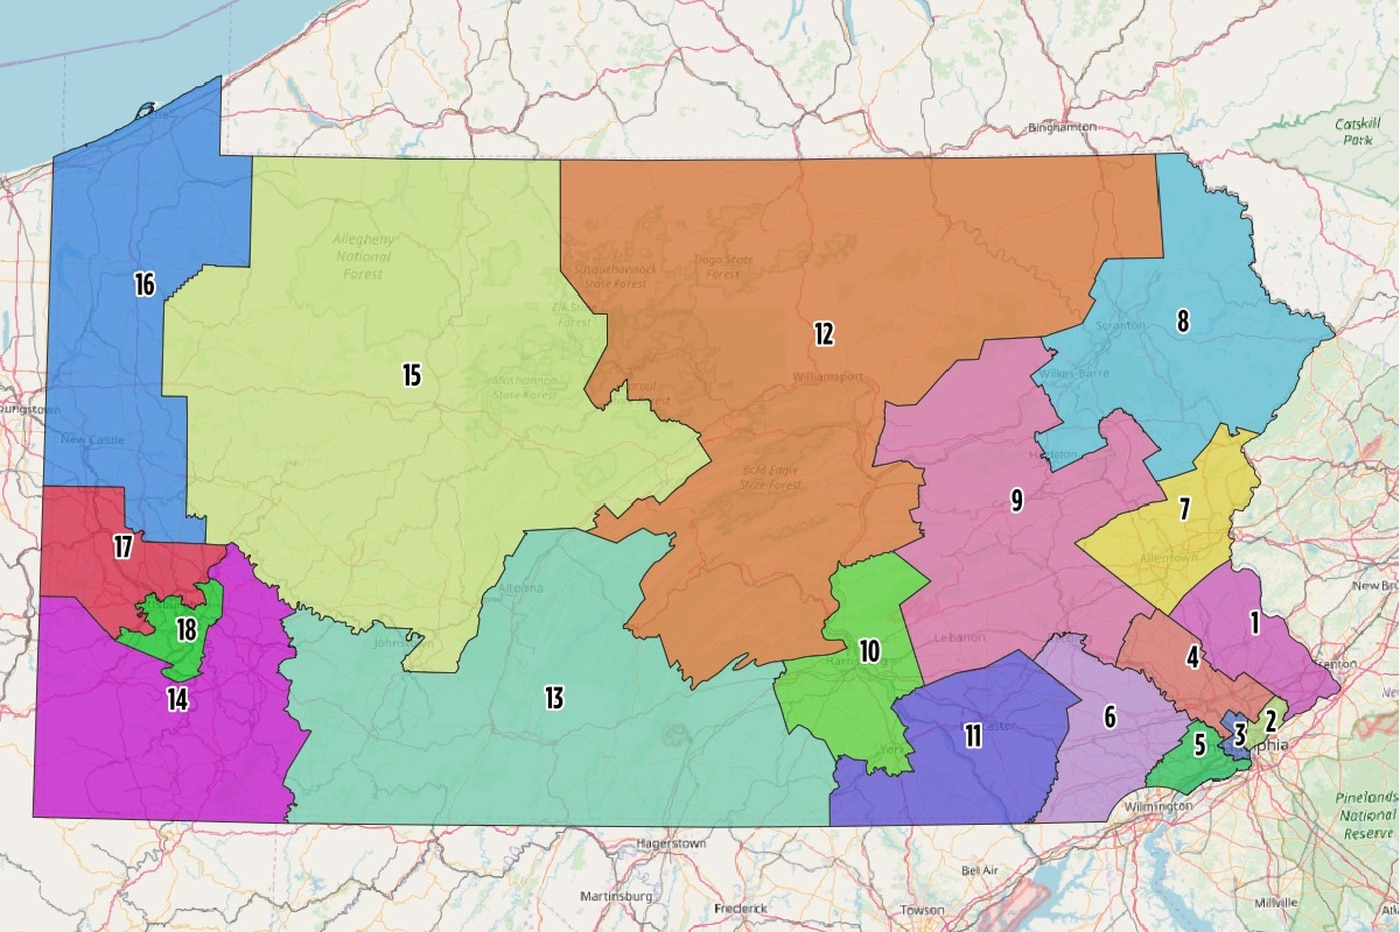 How to fix gerrymandering in Pennsylvania? Let the voters decide | Editorial